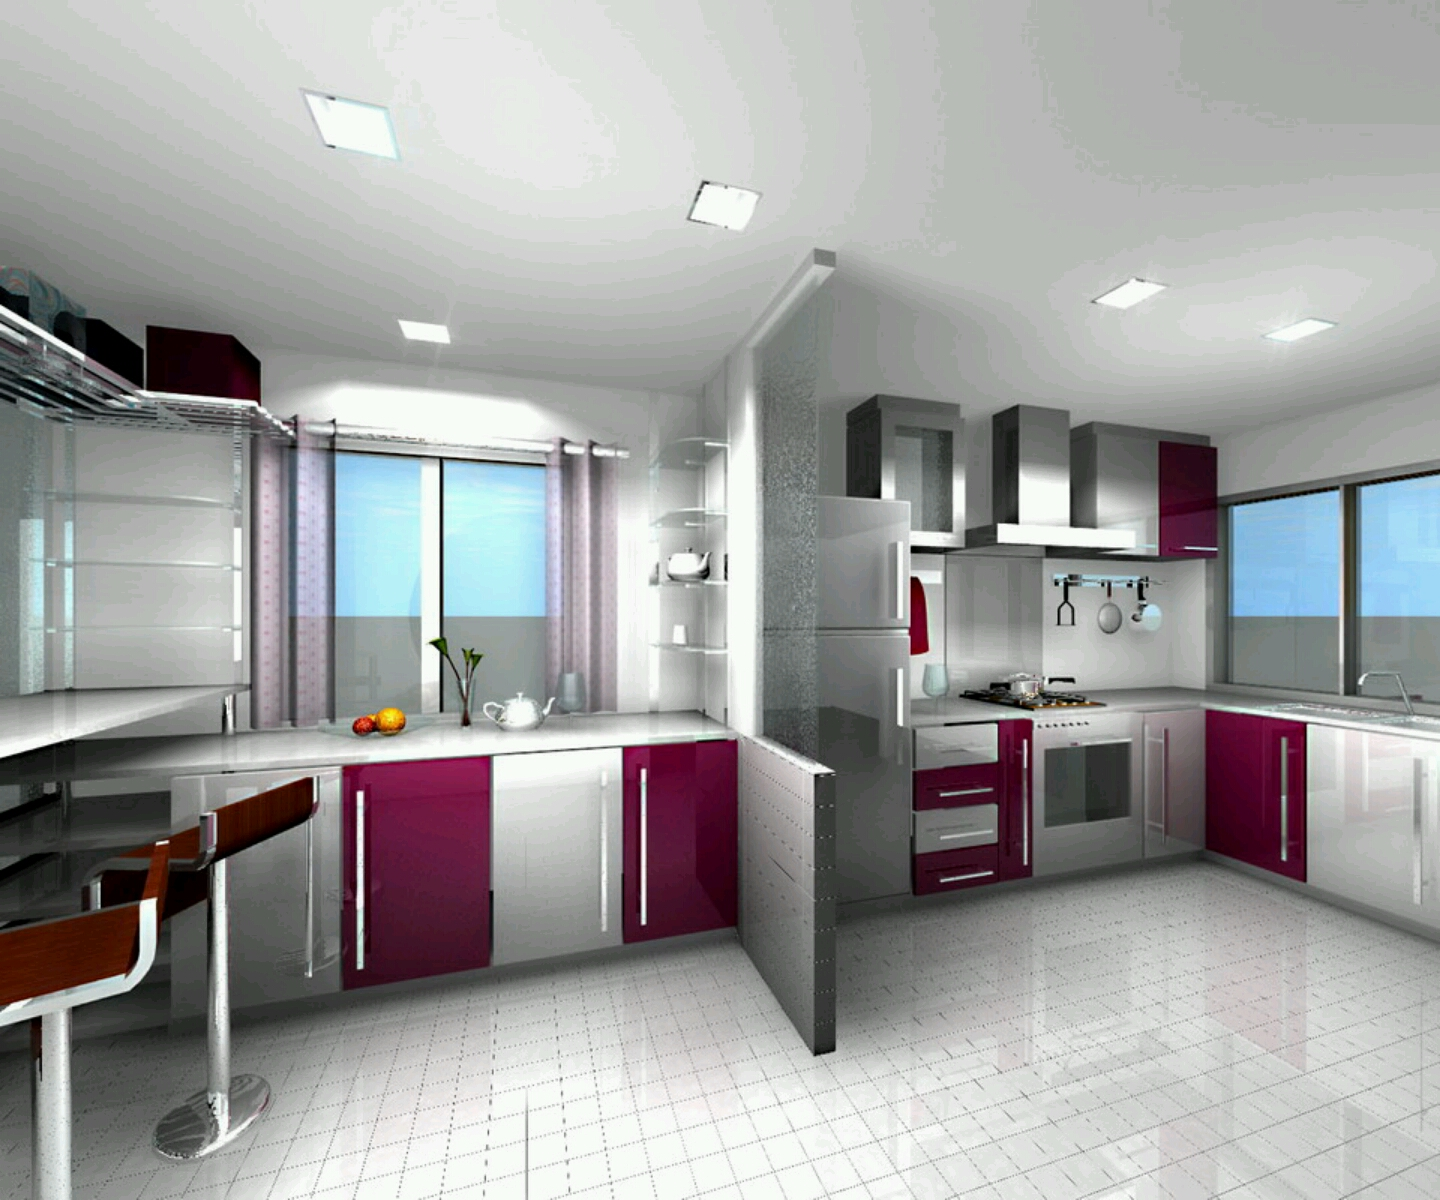 New home designs latest modern homes ultra modern kitchen designs ideas Kitchen design blogs 2014